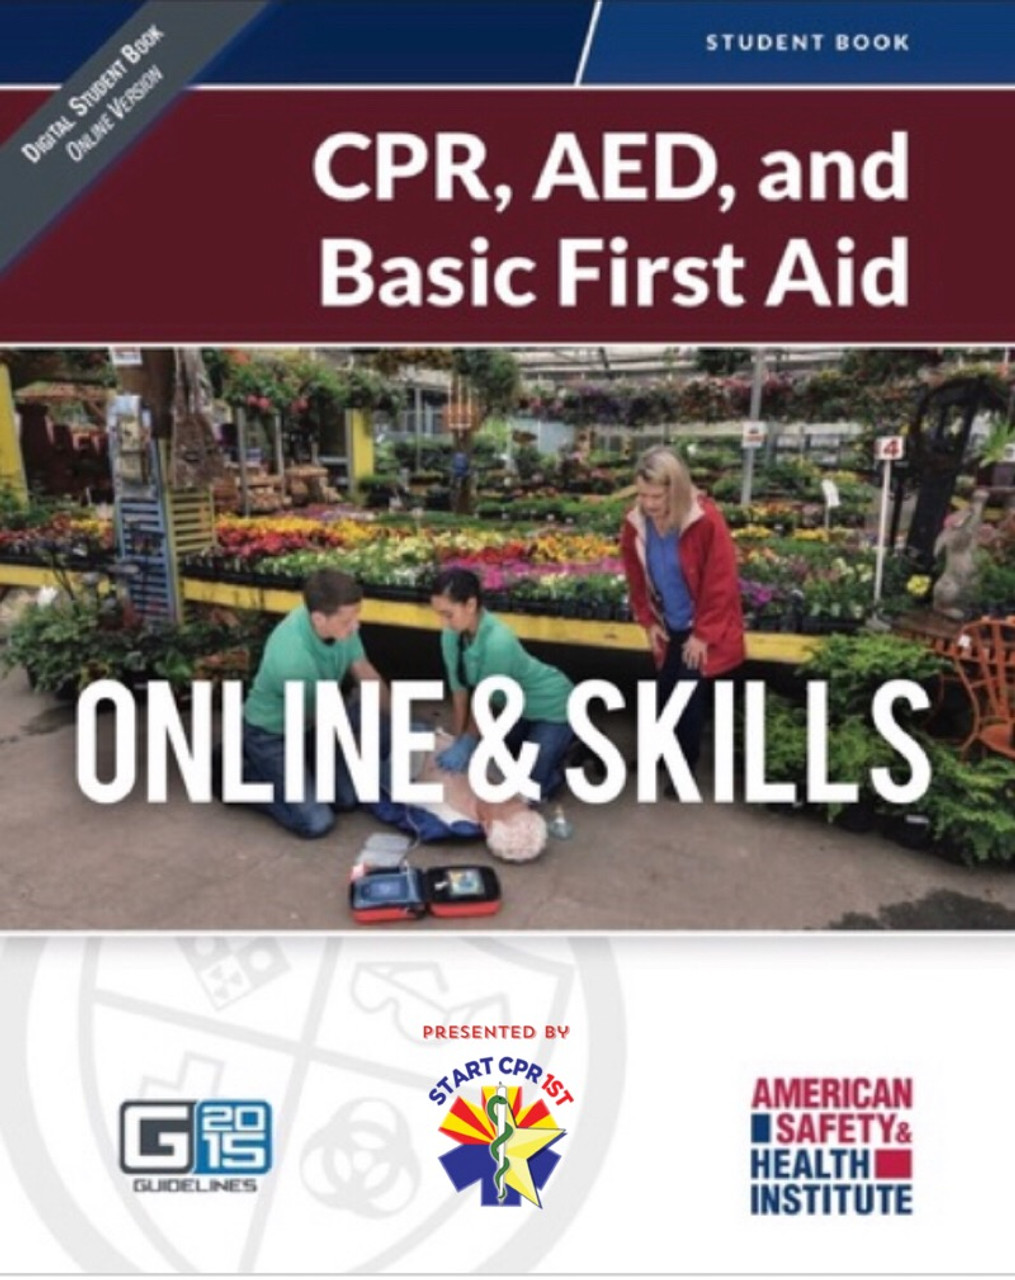 Ashi Cpr Aed Basic First Aid Online Skills Start Cpr 1st